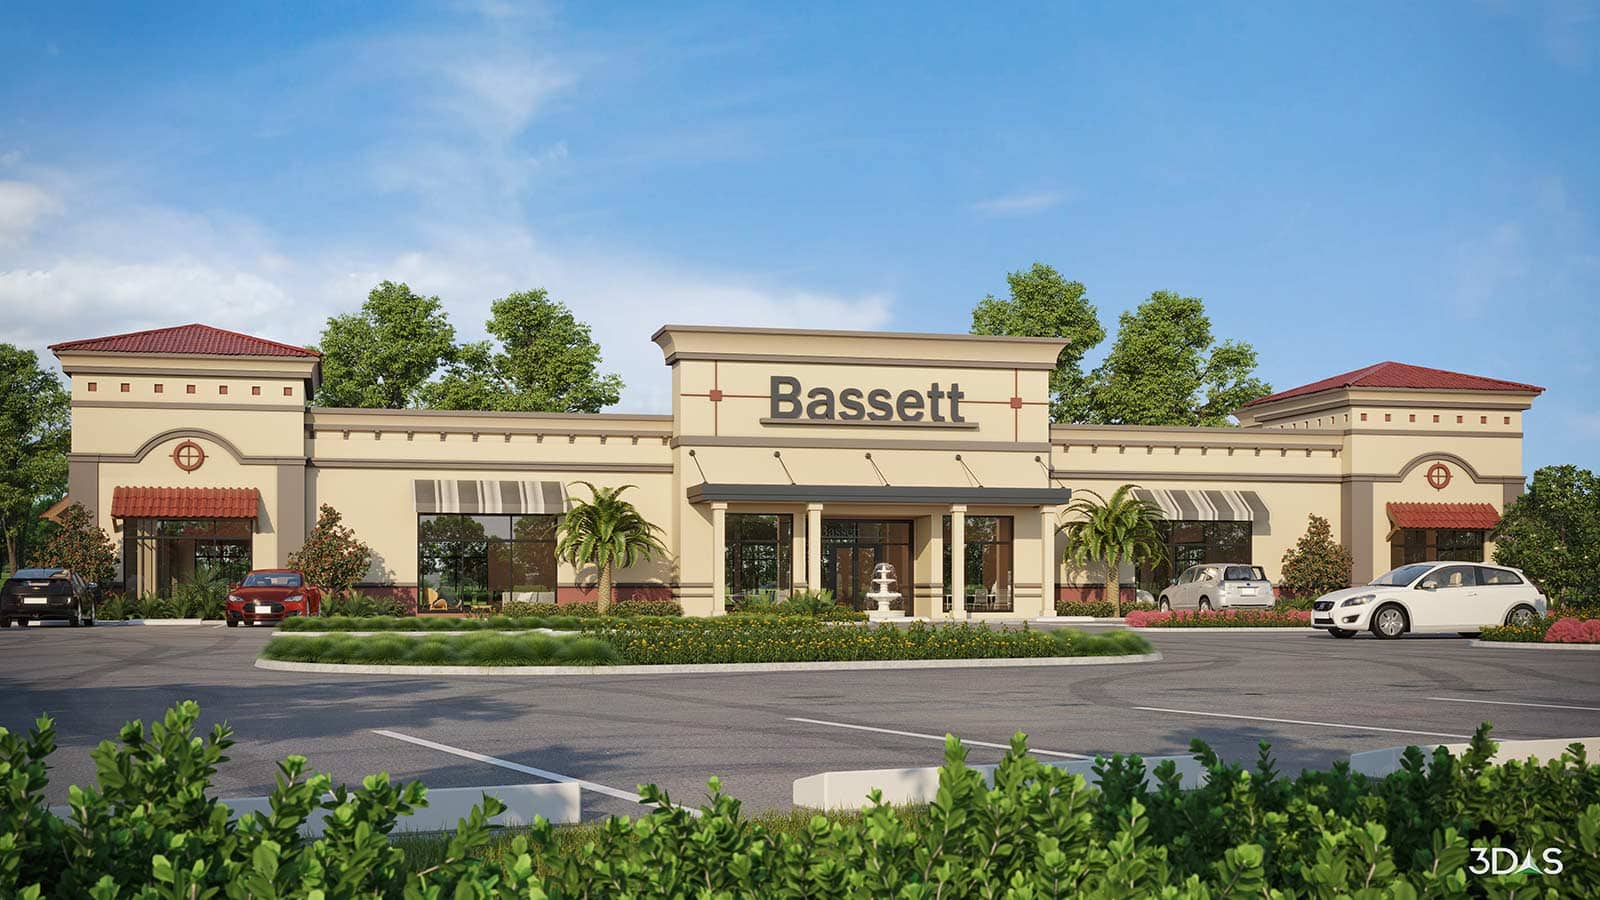 3D rendering of the Bassett Furniture store in Coconut Point mall Estero, Florida.